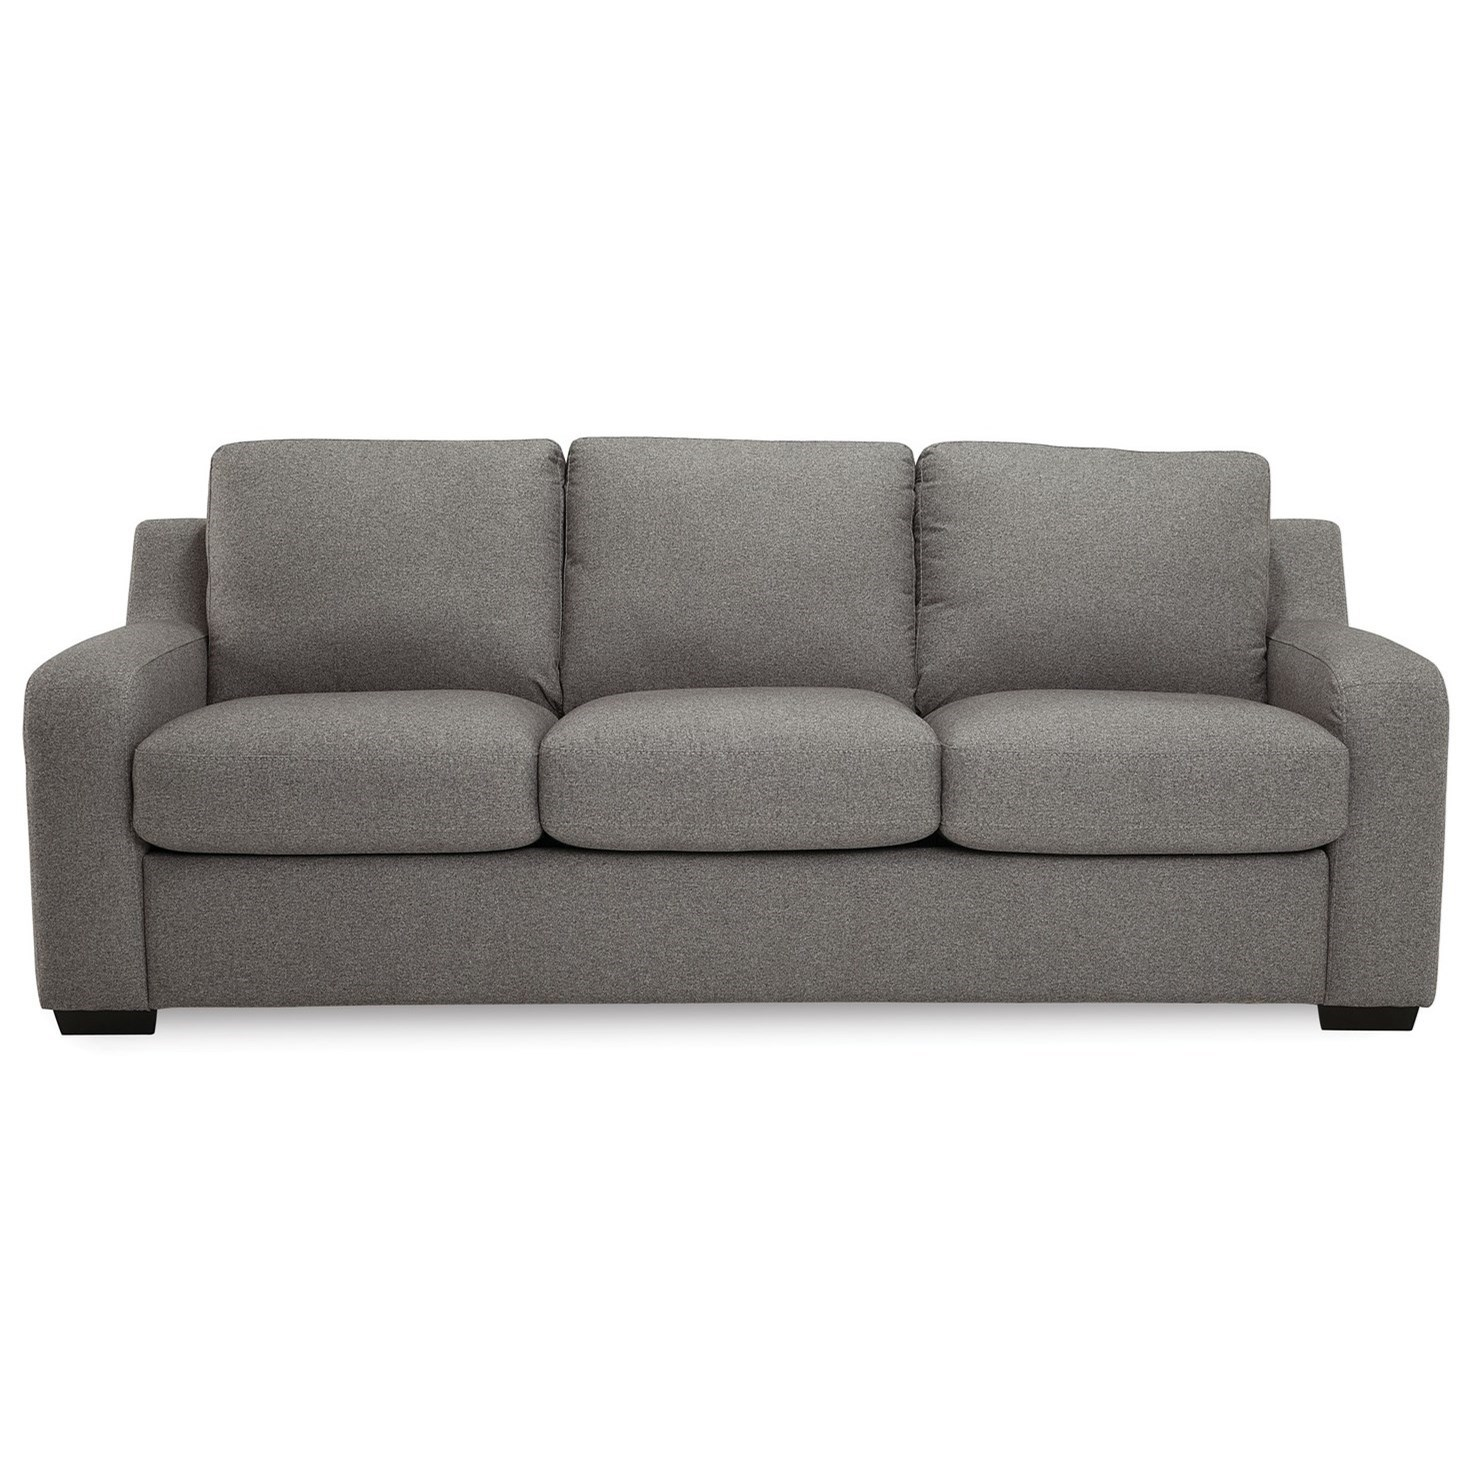 Sofabed Queen 60